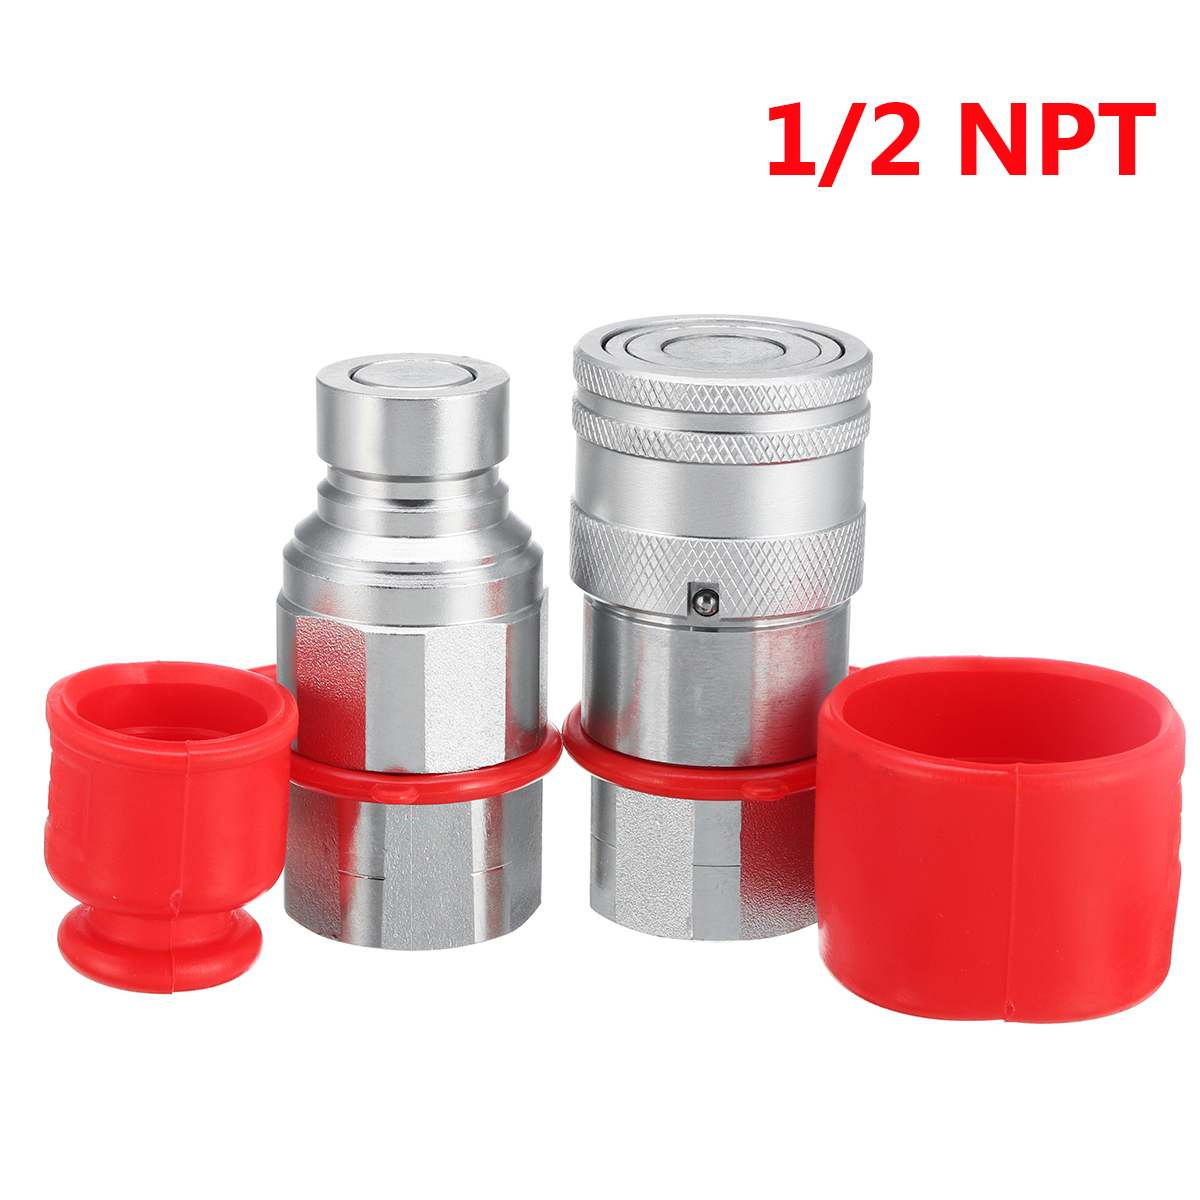 1/2 NPT Flat Face Coupler Adapter Male Female Skid Steer Hydraulic Quick Connect Coupler Cover Coupling Set for ISO16028 Series 30 set 60pcs 30male 30female 1 4 iso 7421 bseries hydraulic quick couplings coupler steel